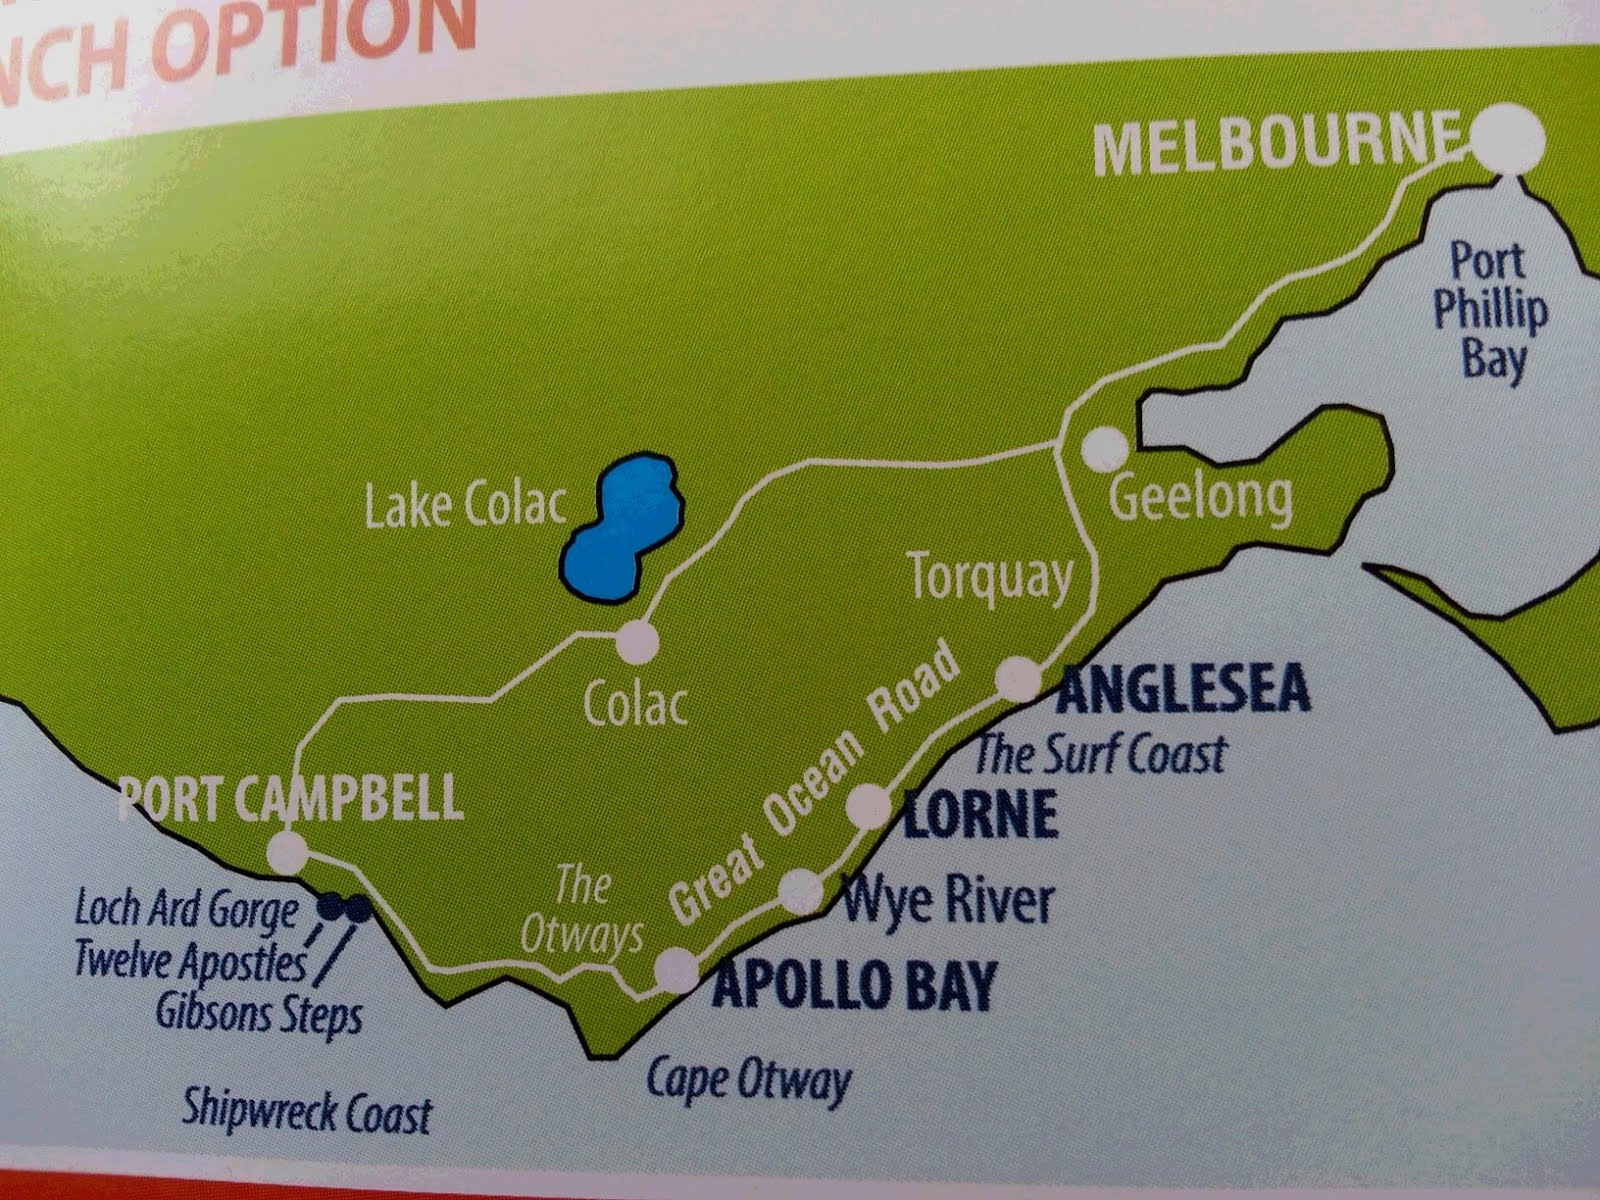 this is a road map we are going to drive a coast until port cambell and come back on forest road